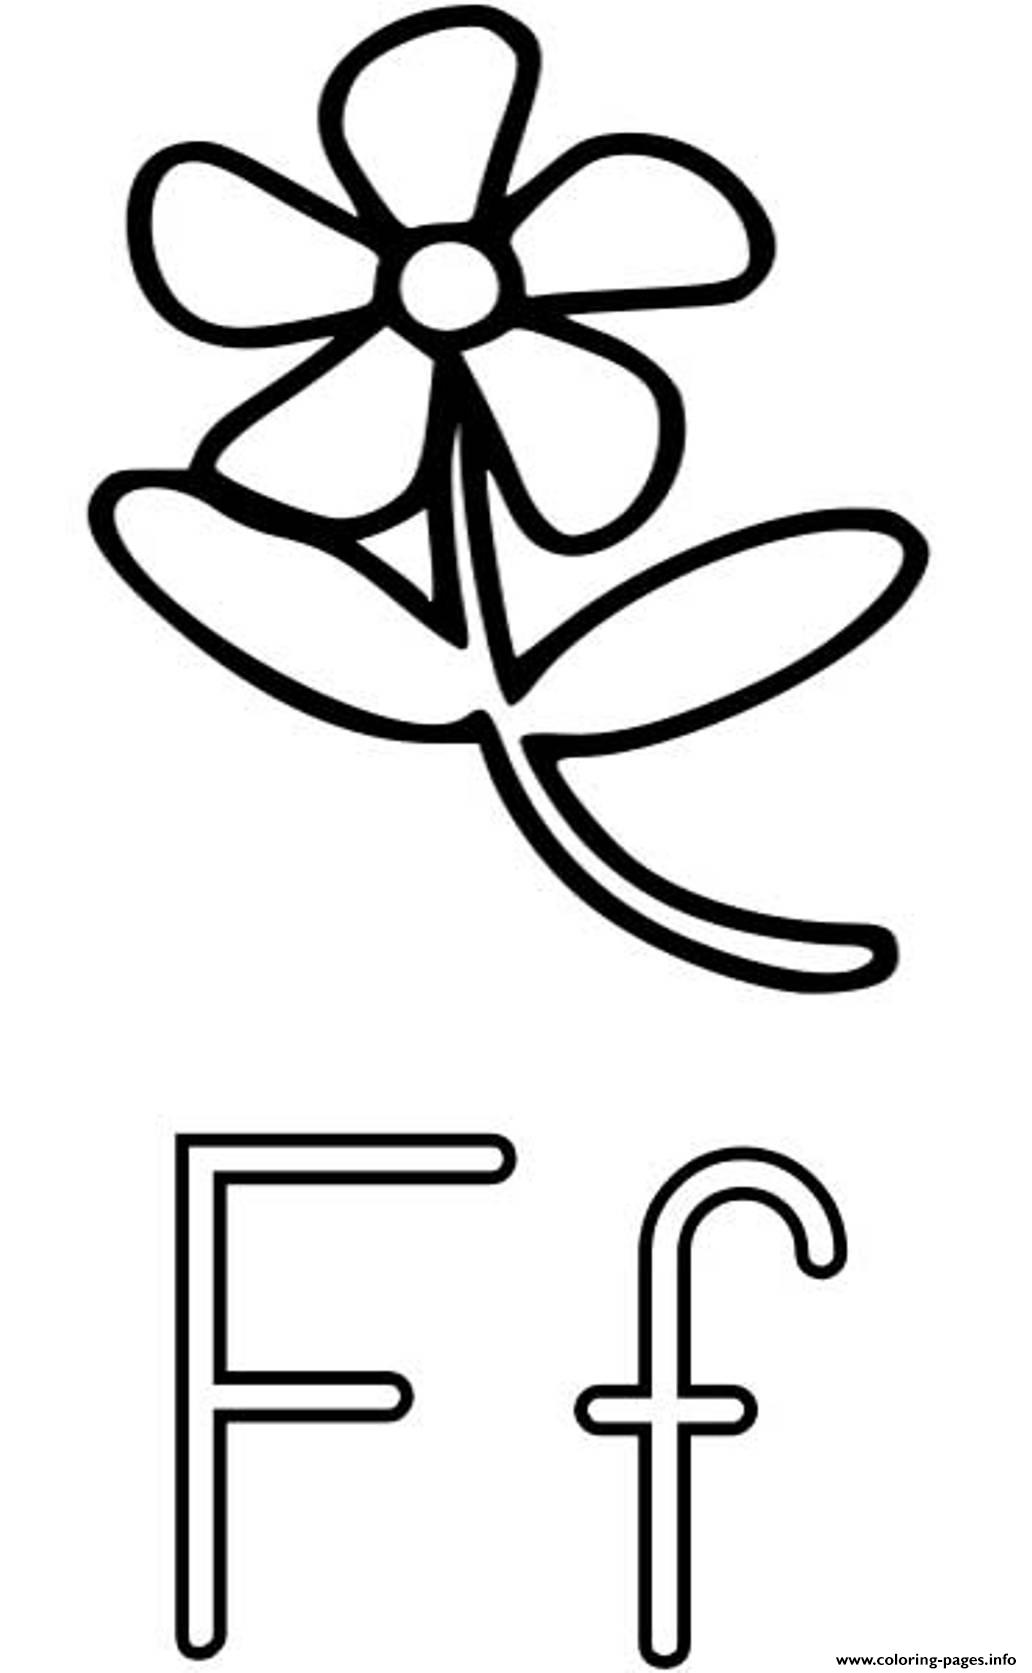 Flower F Free Alphabet S6a23 Coloring Pages Printable